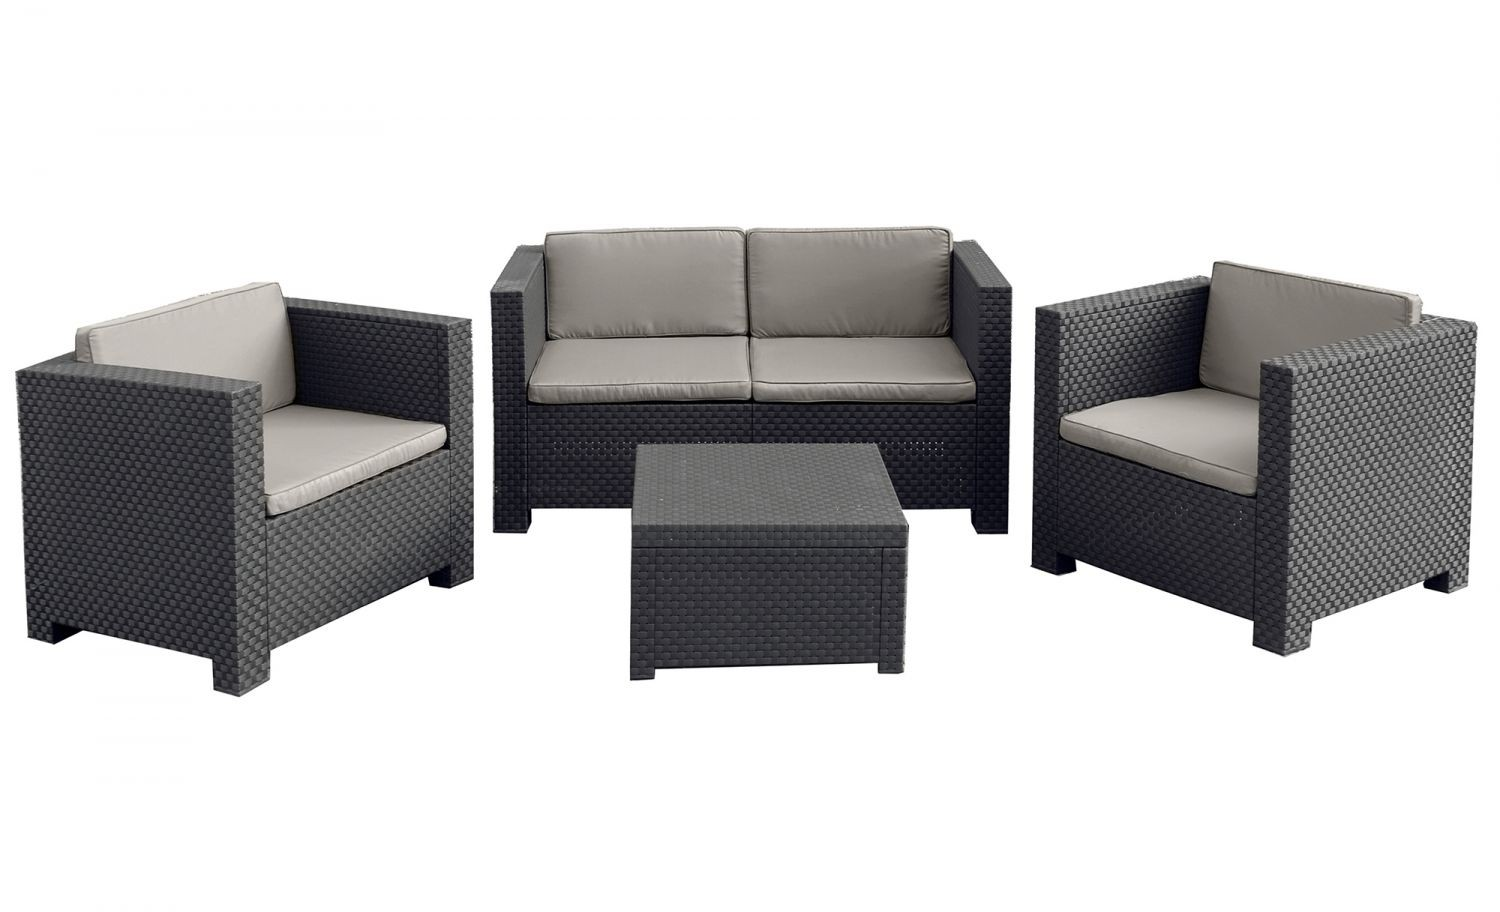 ubud 4 salon de jardin 4 places effet r sine tress e. Black Bedroom Furniture Sets. Home Design Ideas